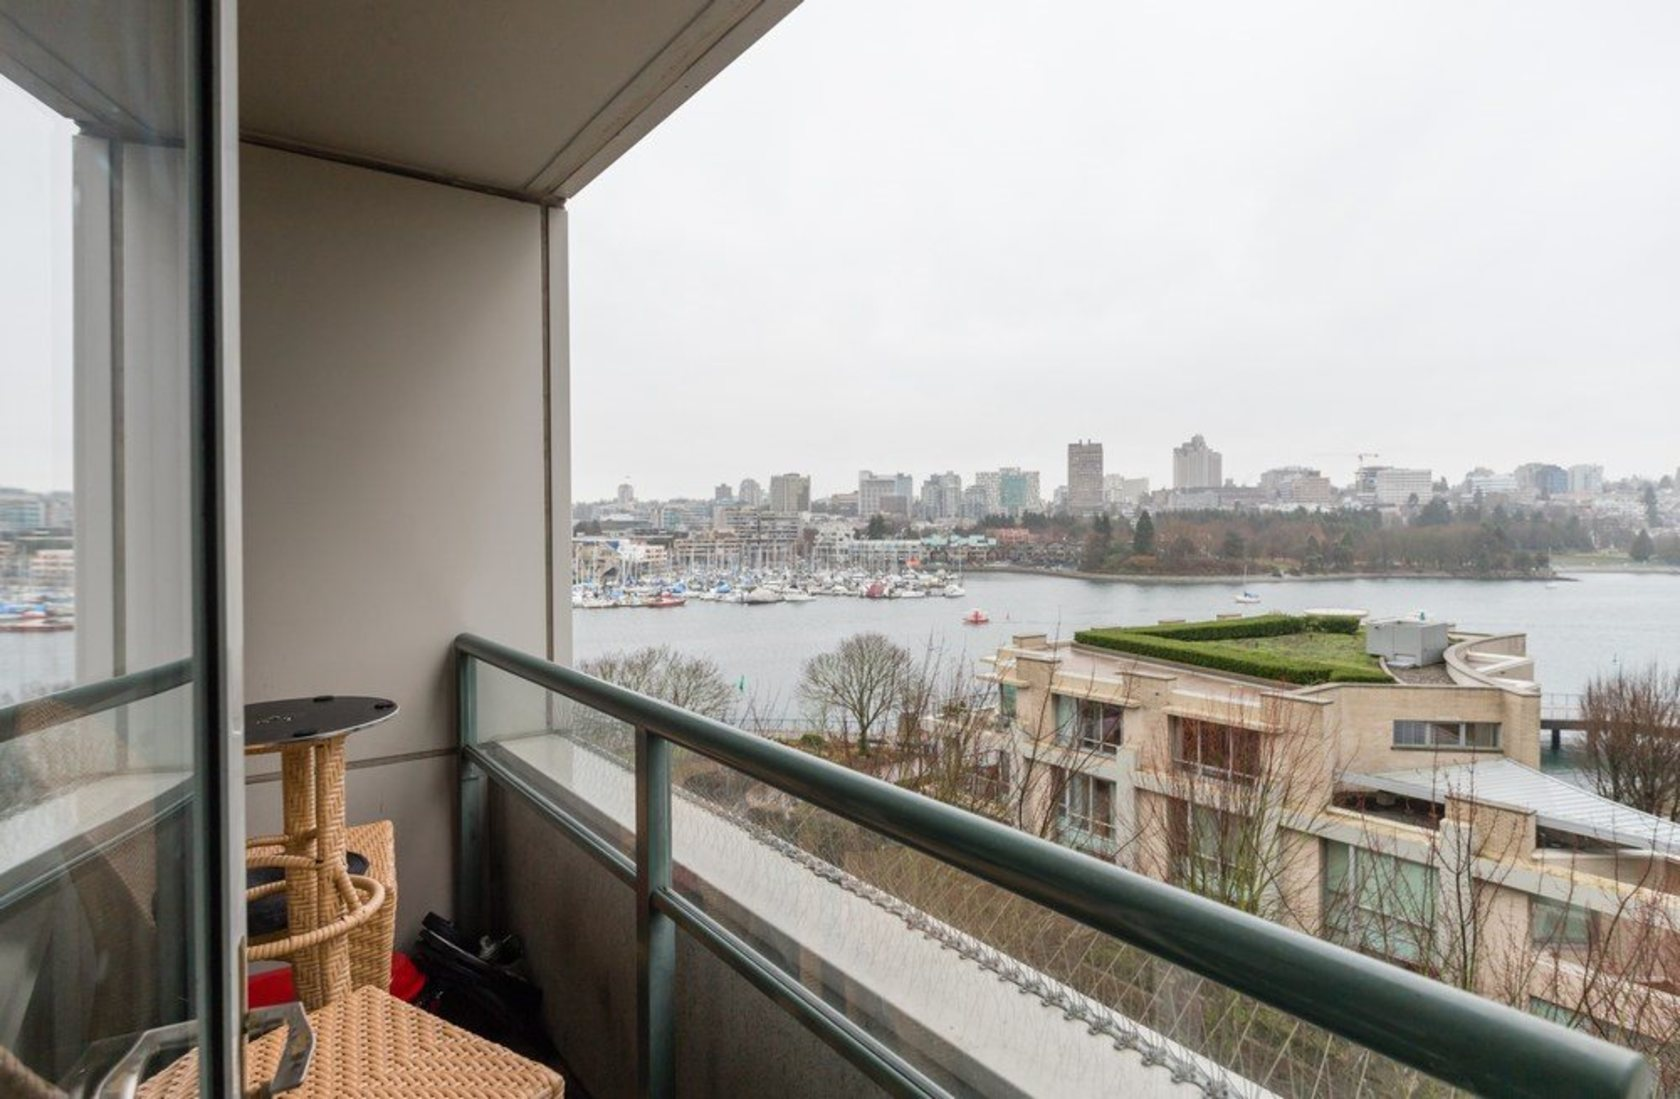 262258306-9 at 705 - 1288 Marinaside, Yaletown, Vancouver West